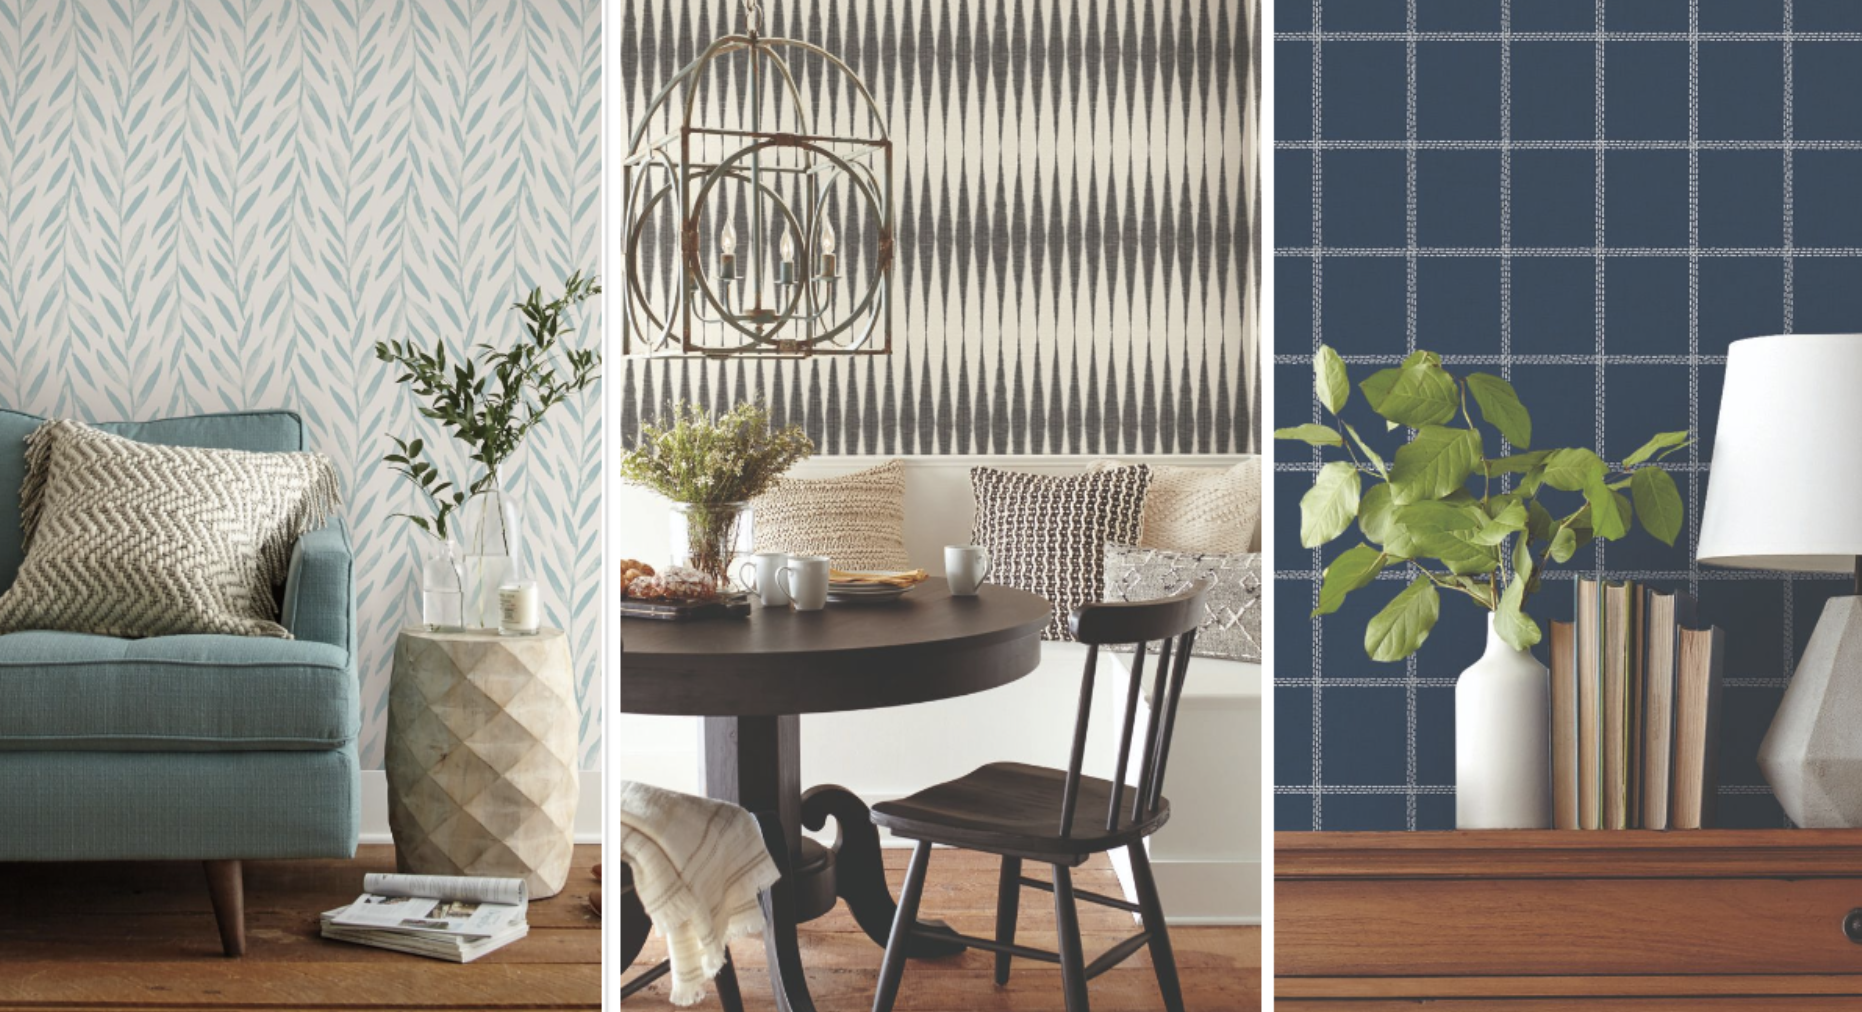 Joanna Gaines S Magnolia Home Expands Wallpaper Collection With 21 New Peel And Stick Options